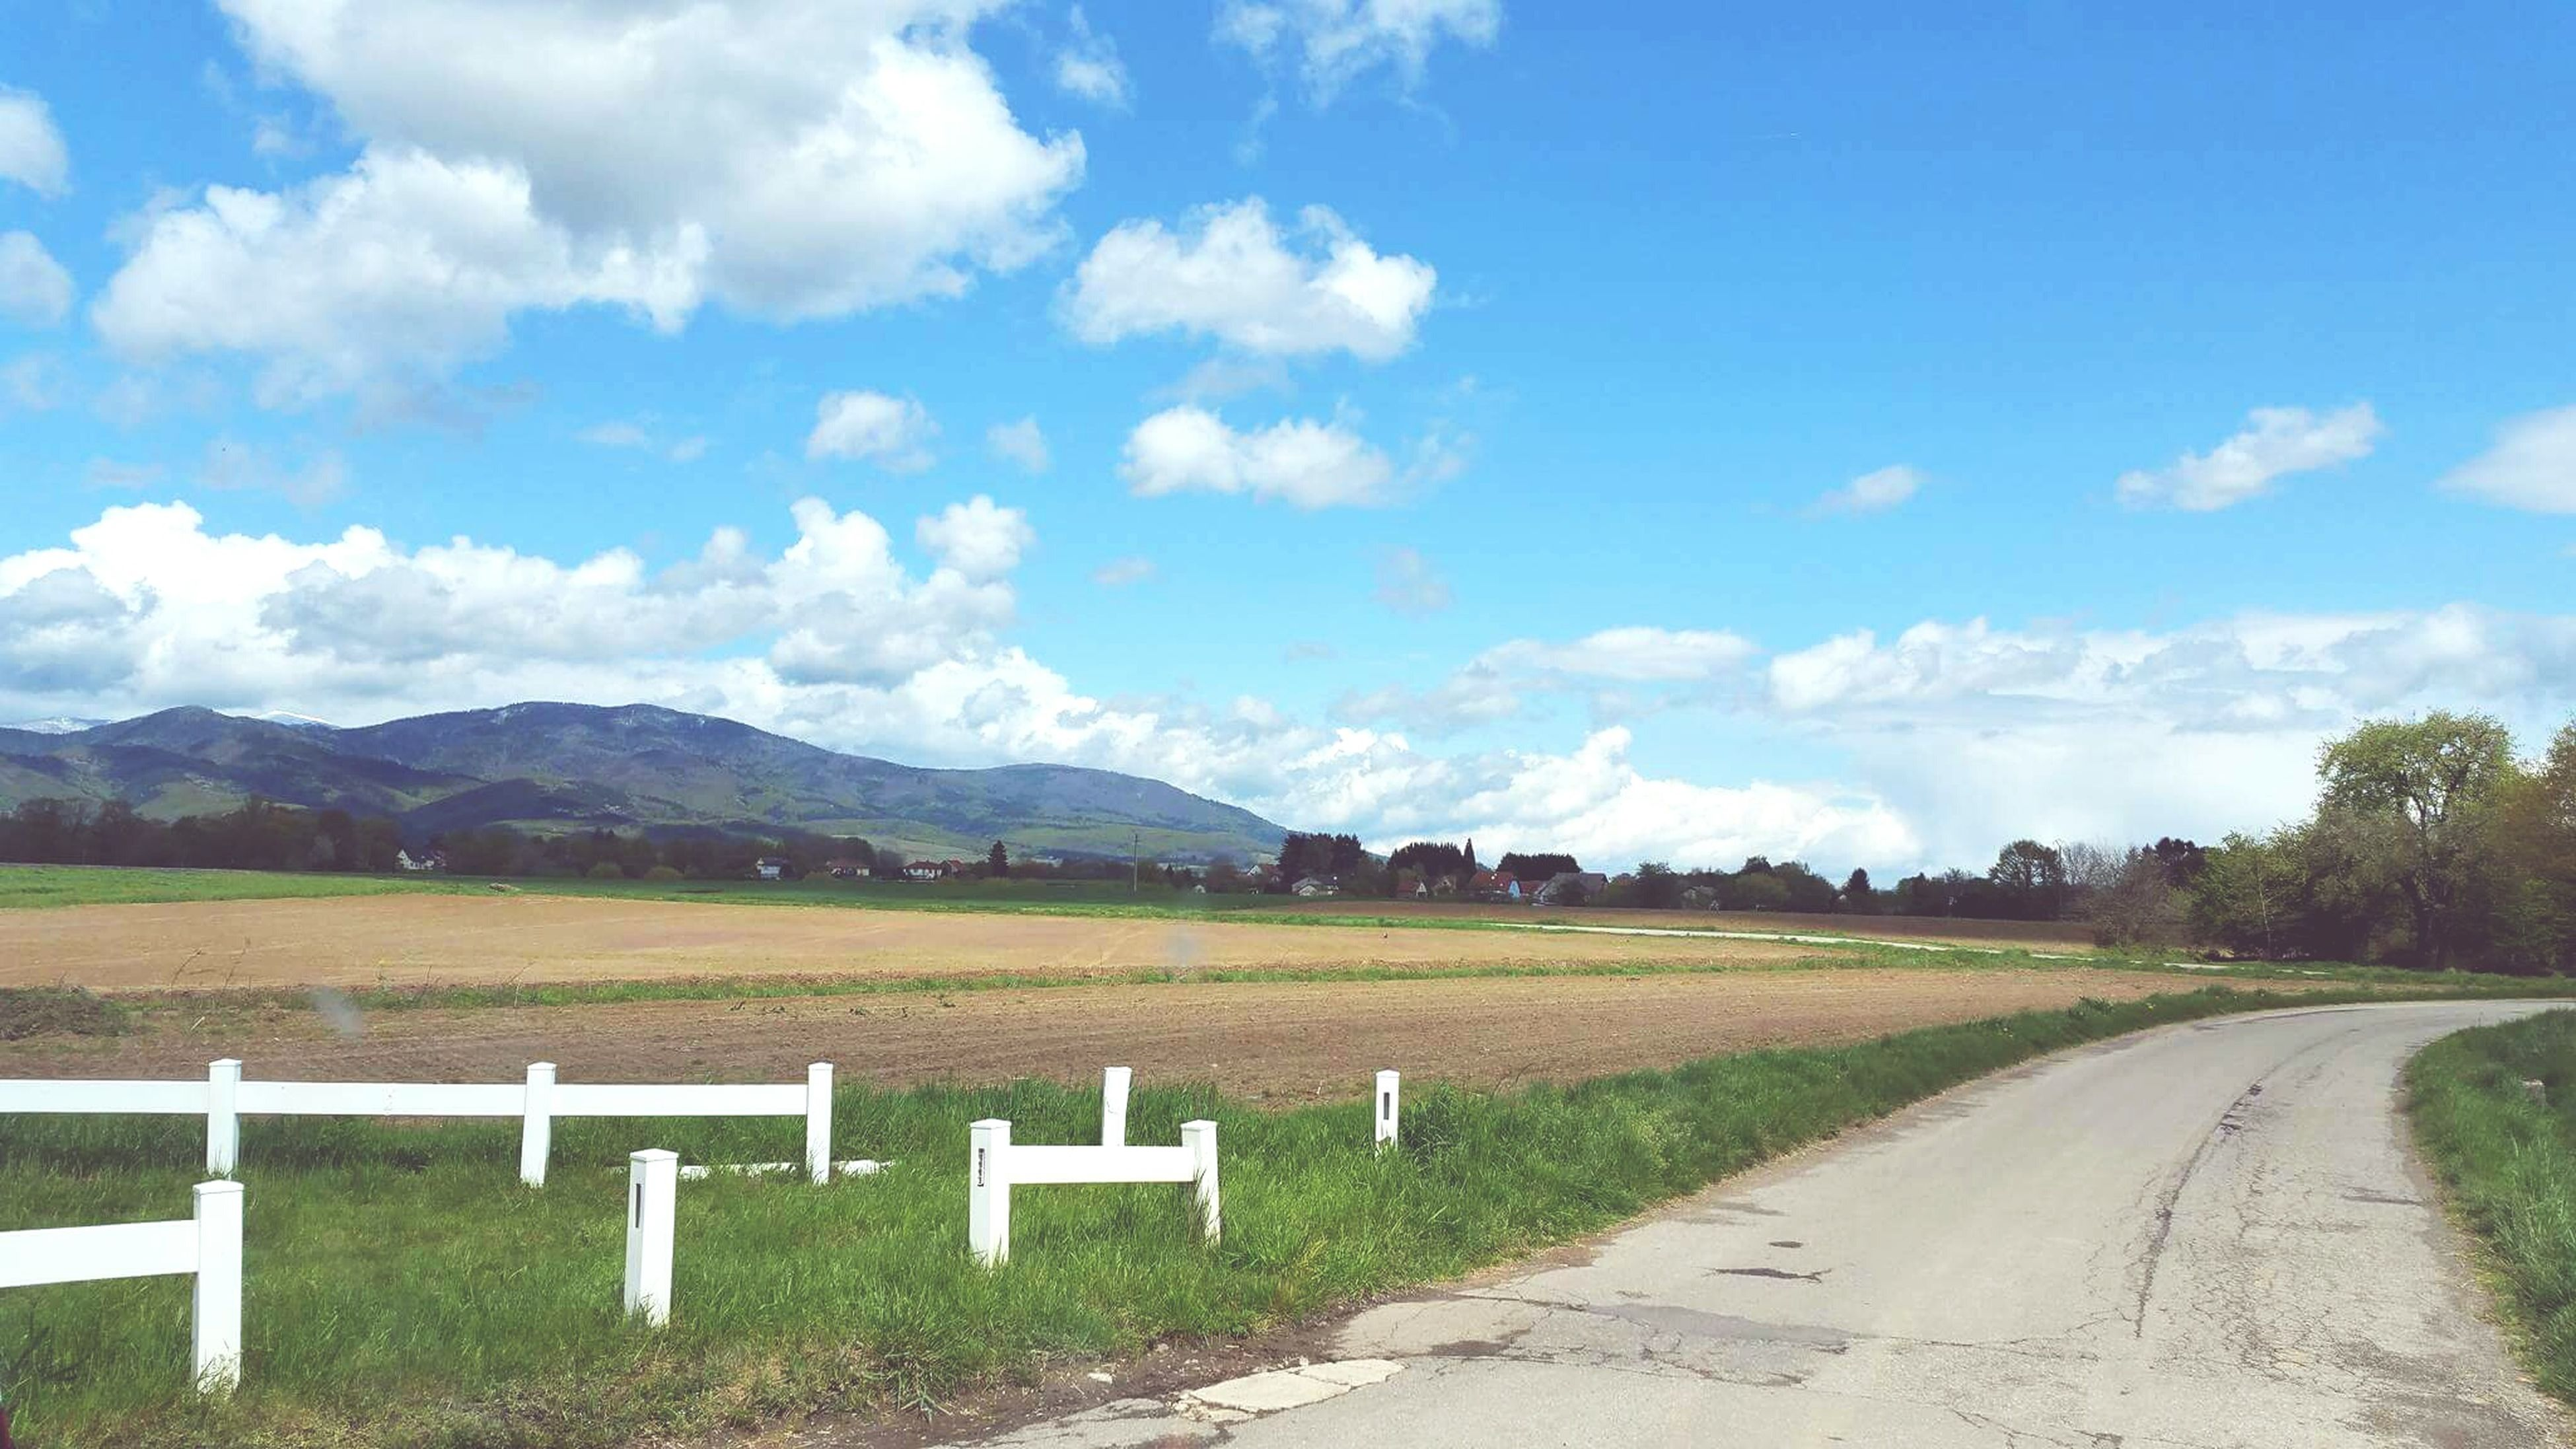 sky, road, the way forward, transportation, cloud - sky, landscape, road marking, country road, empty, cloud, tranquility, tranquil scene, blue, grass, diminishing perspective, field, scenics, mountain, nature, vanishing point